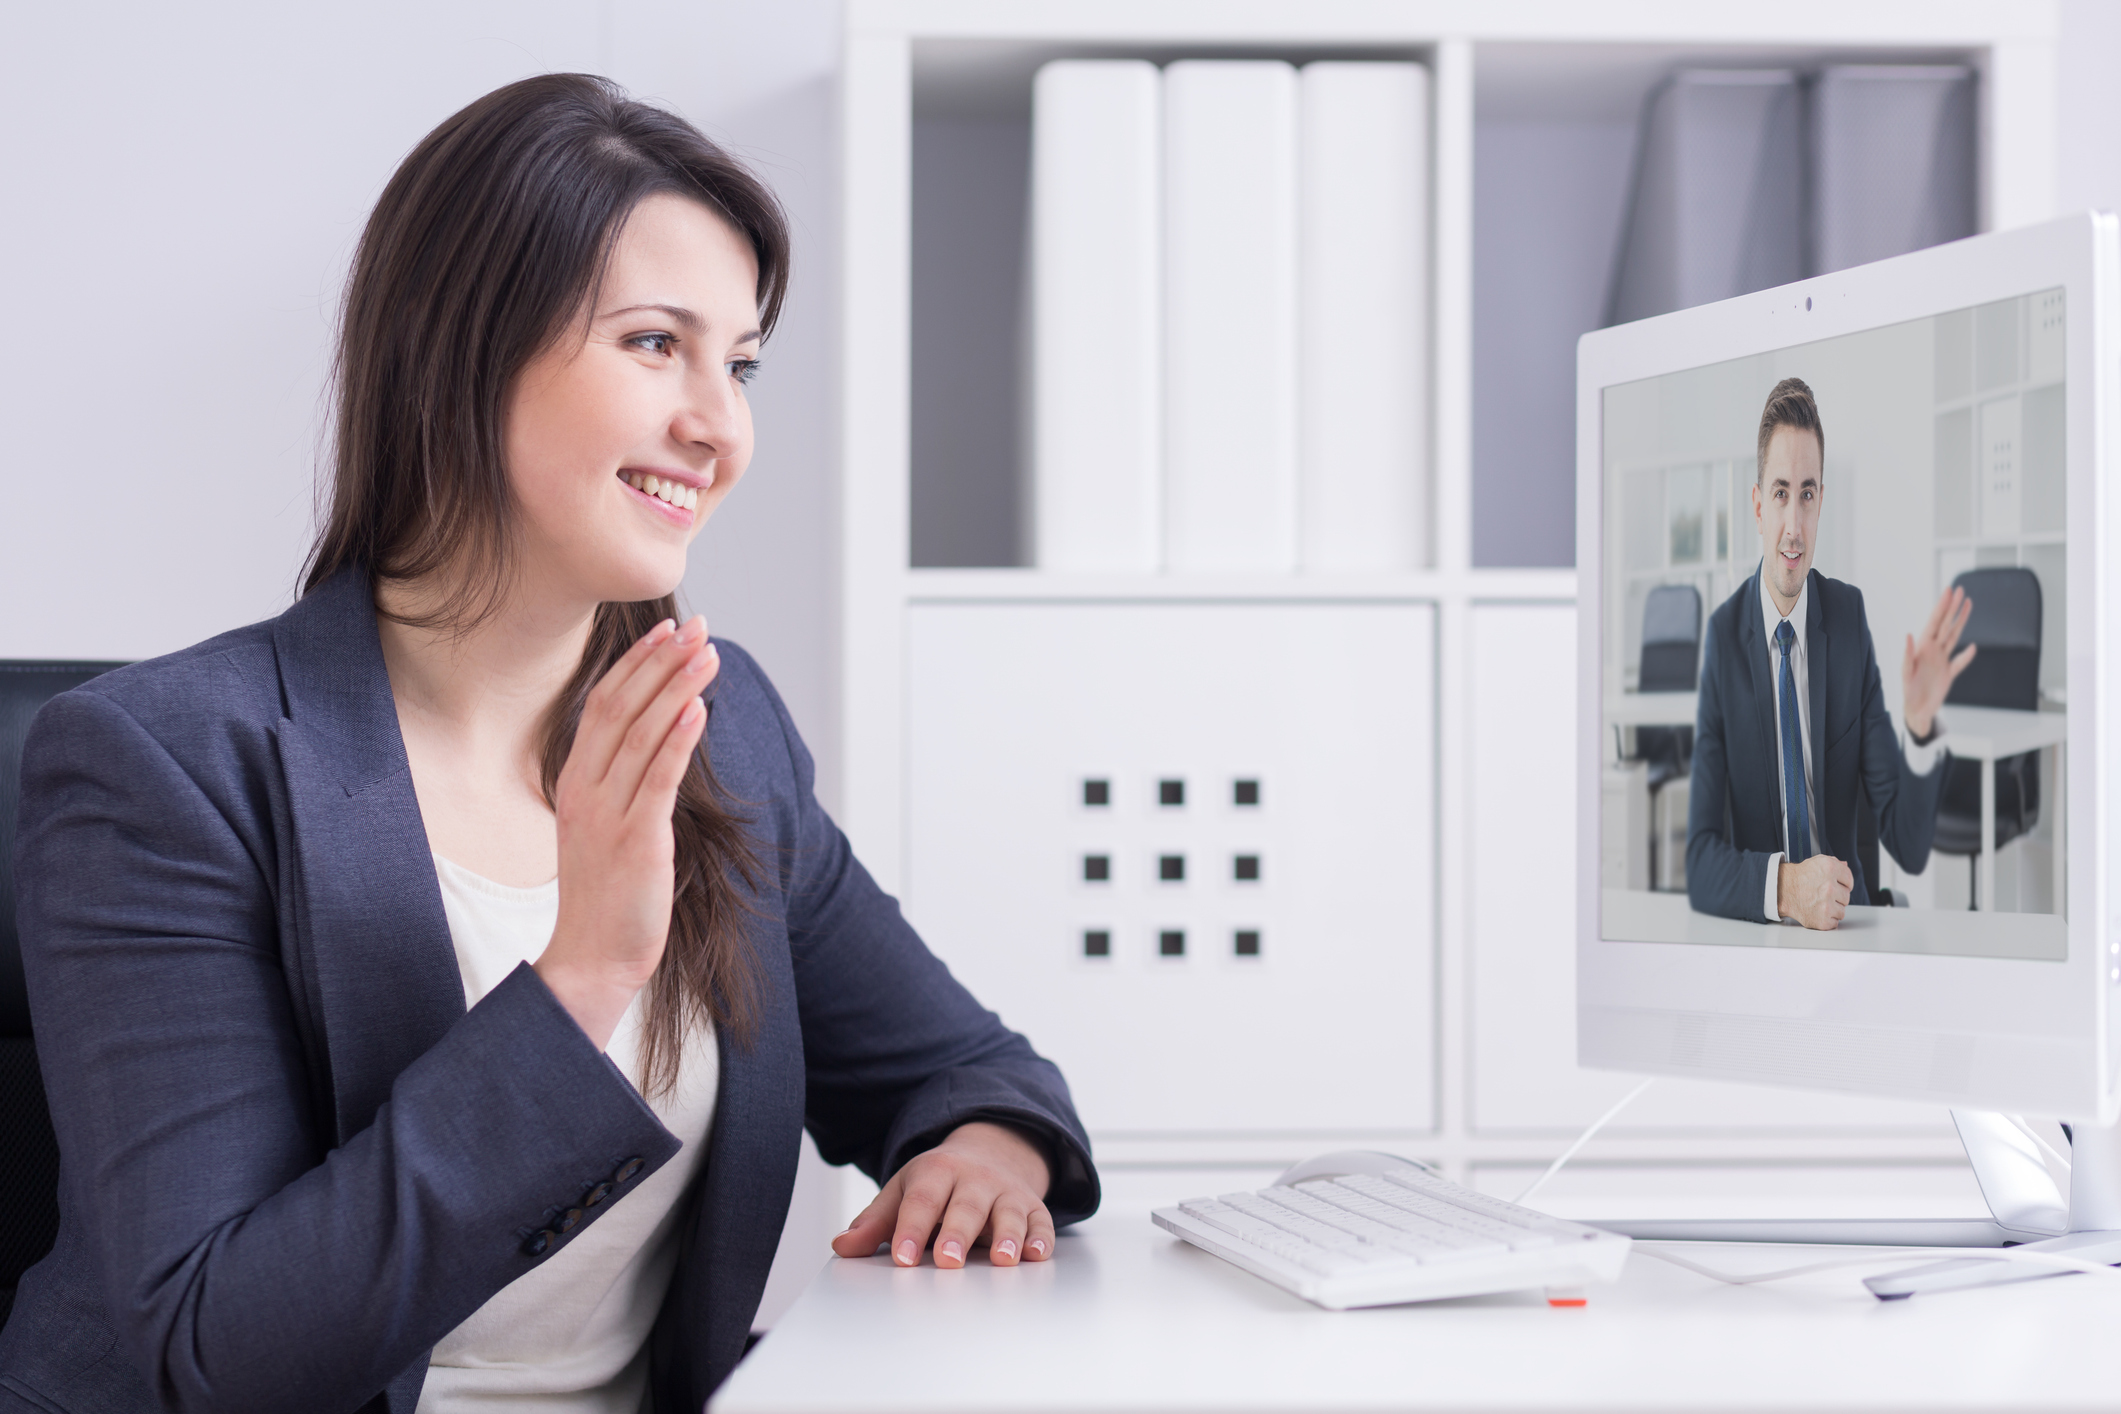 networking us news ask 5 questions about networking opportunities in online mba programs